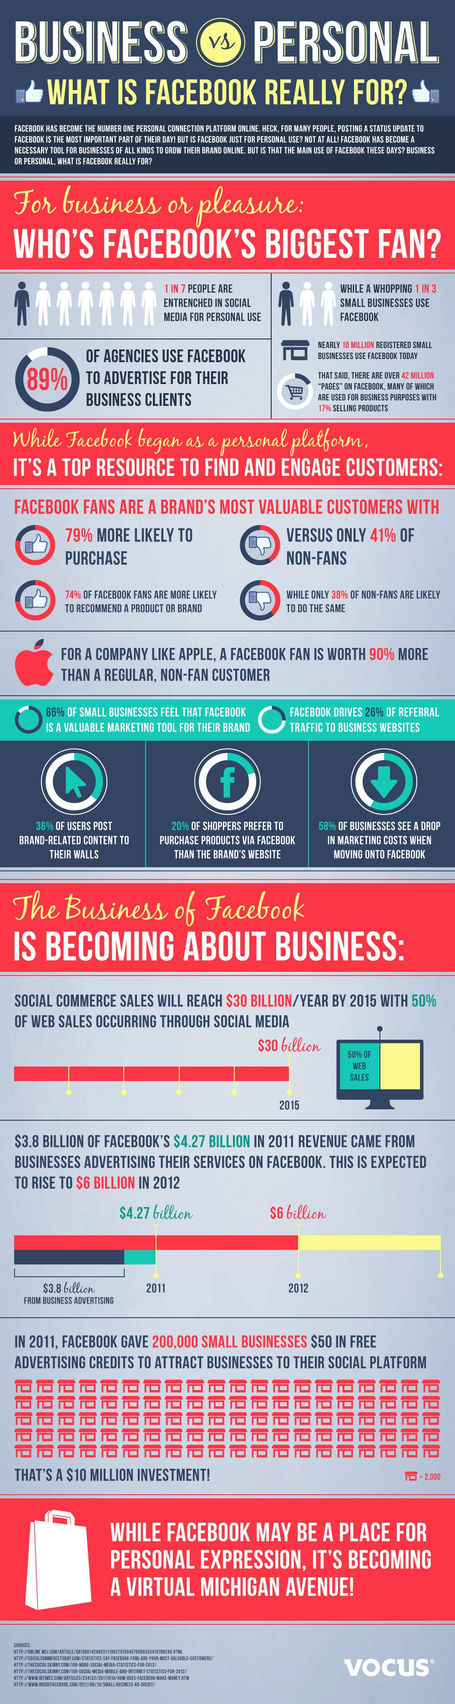 Why Sales on Social Media Will Be Huge By 2015 [INFOGRAPHIC] | Digital-News on Scoop.it today | Scoop.it